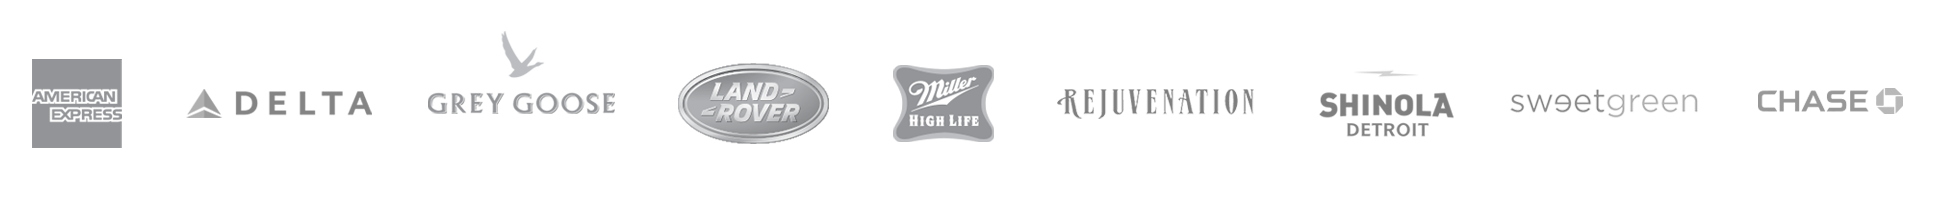 NM Brands.png